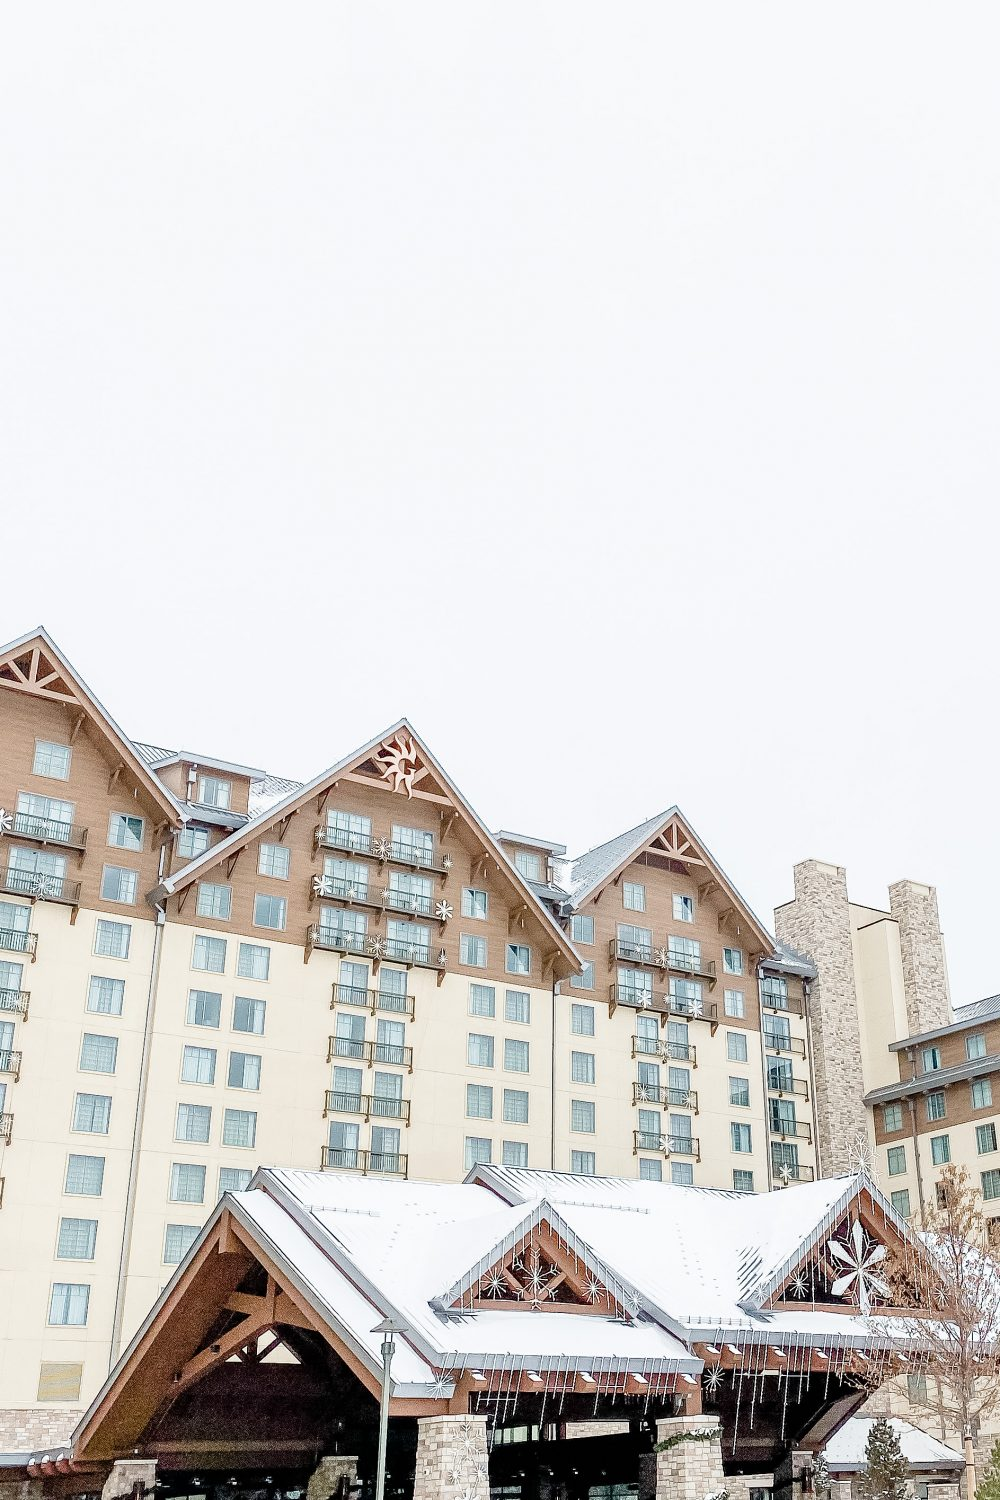 Gaylord Rockies Christmas: Know Before You Go